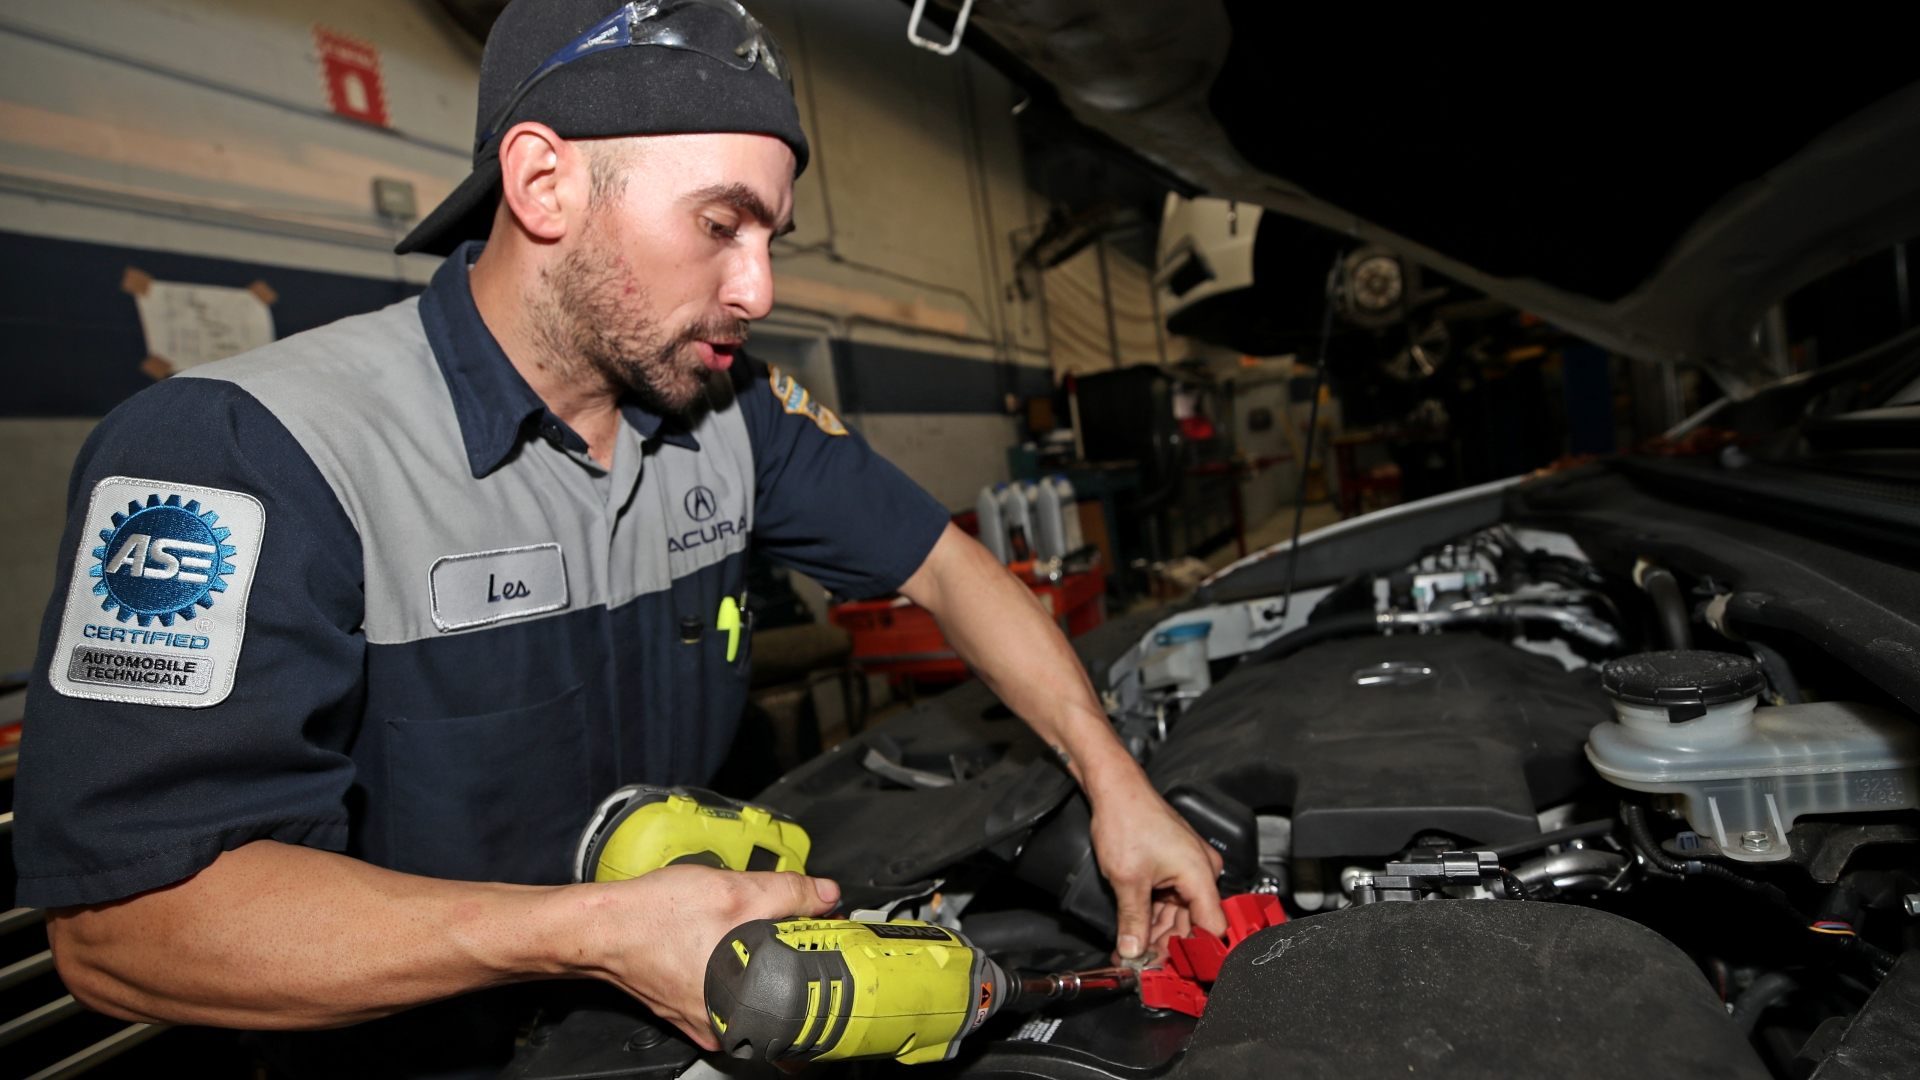 The Car Mechanic Trade Is Dying Who Will Fix Our High Tech Cars South Florida Sun Sentinel South Florida Sun Sentinel